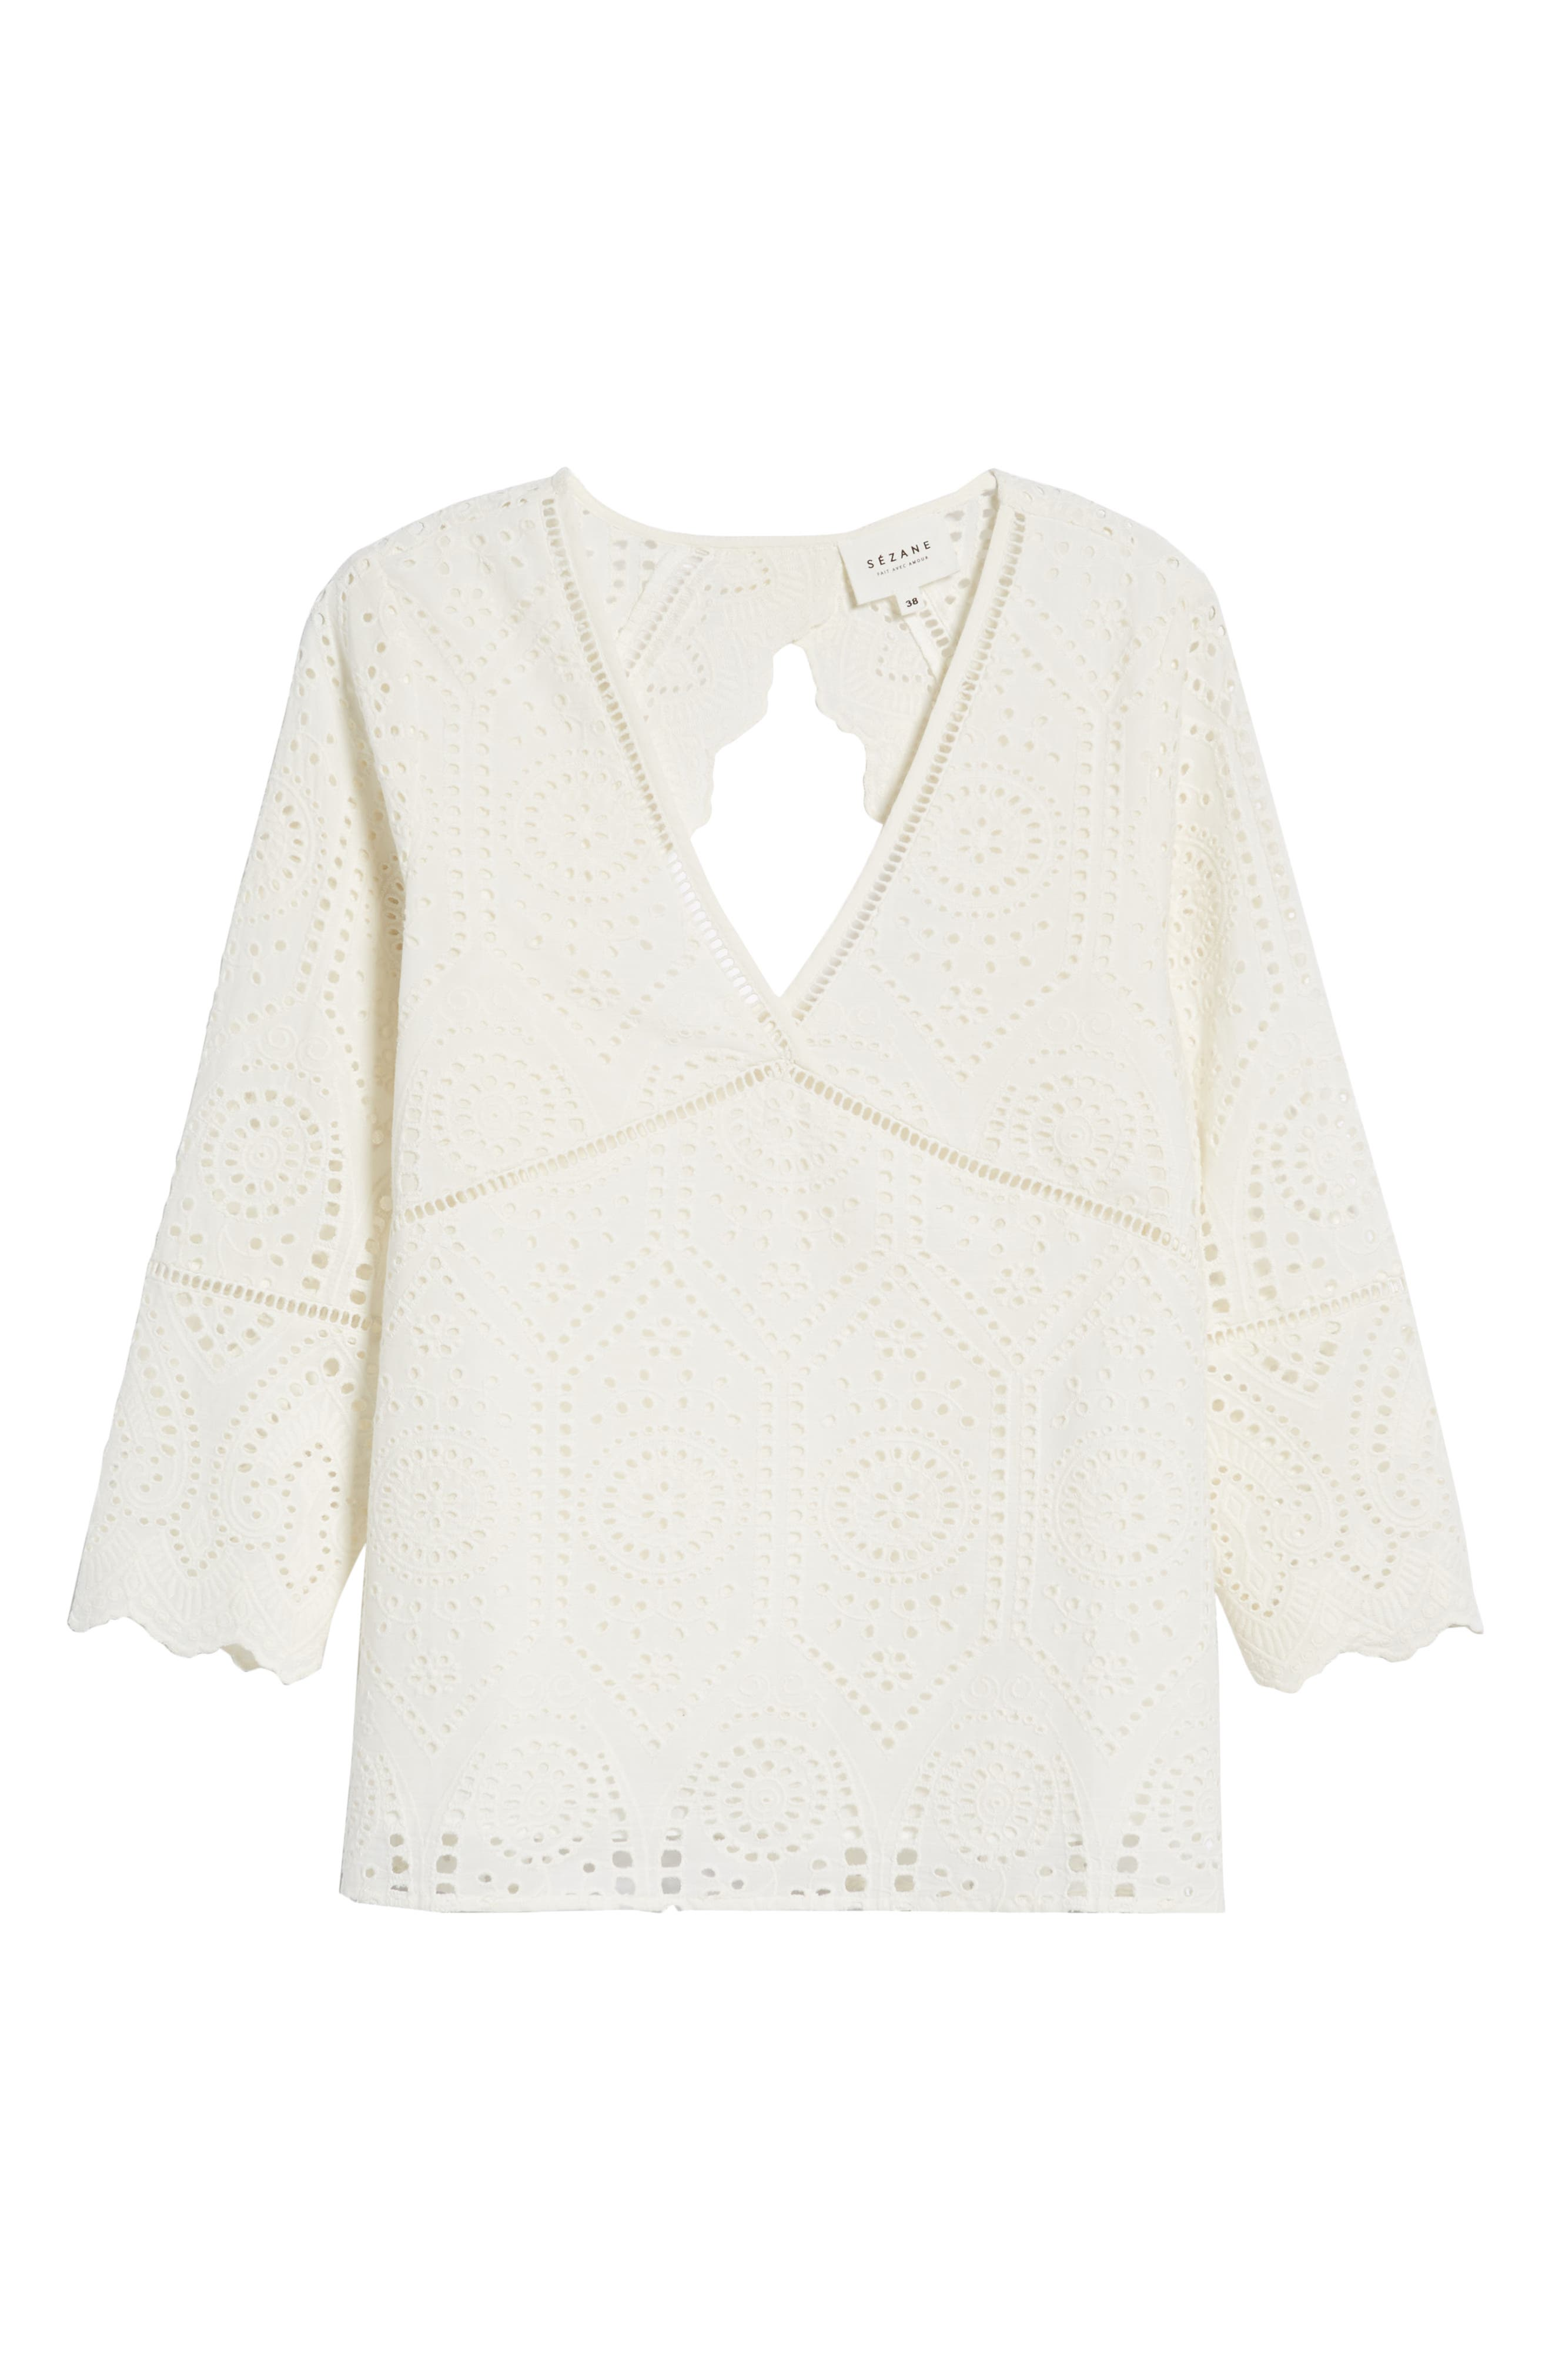 Andrea Cutwork Blouse,                             Alternate thumbnail 6, color,                             100